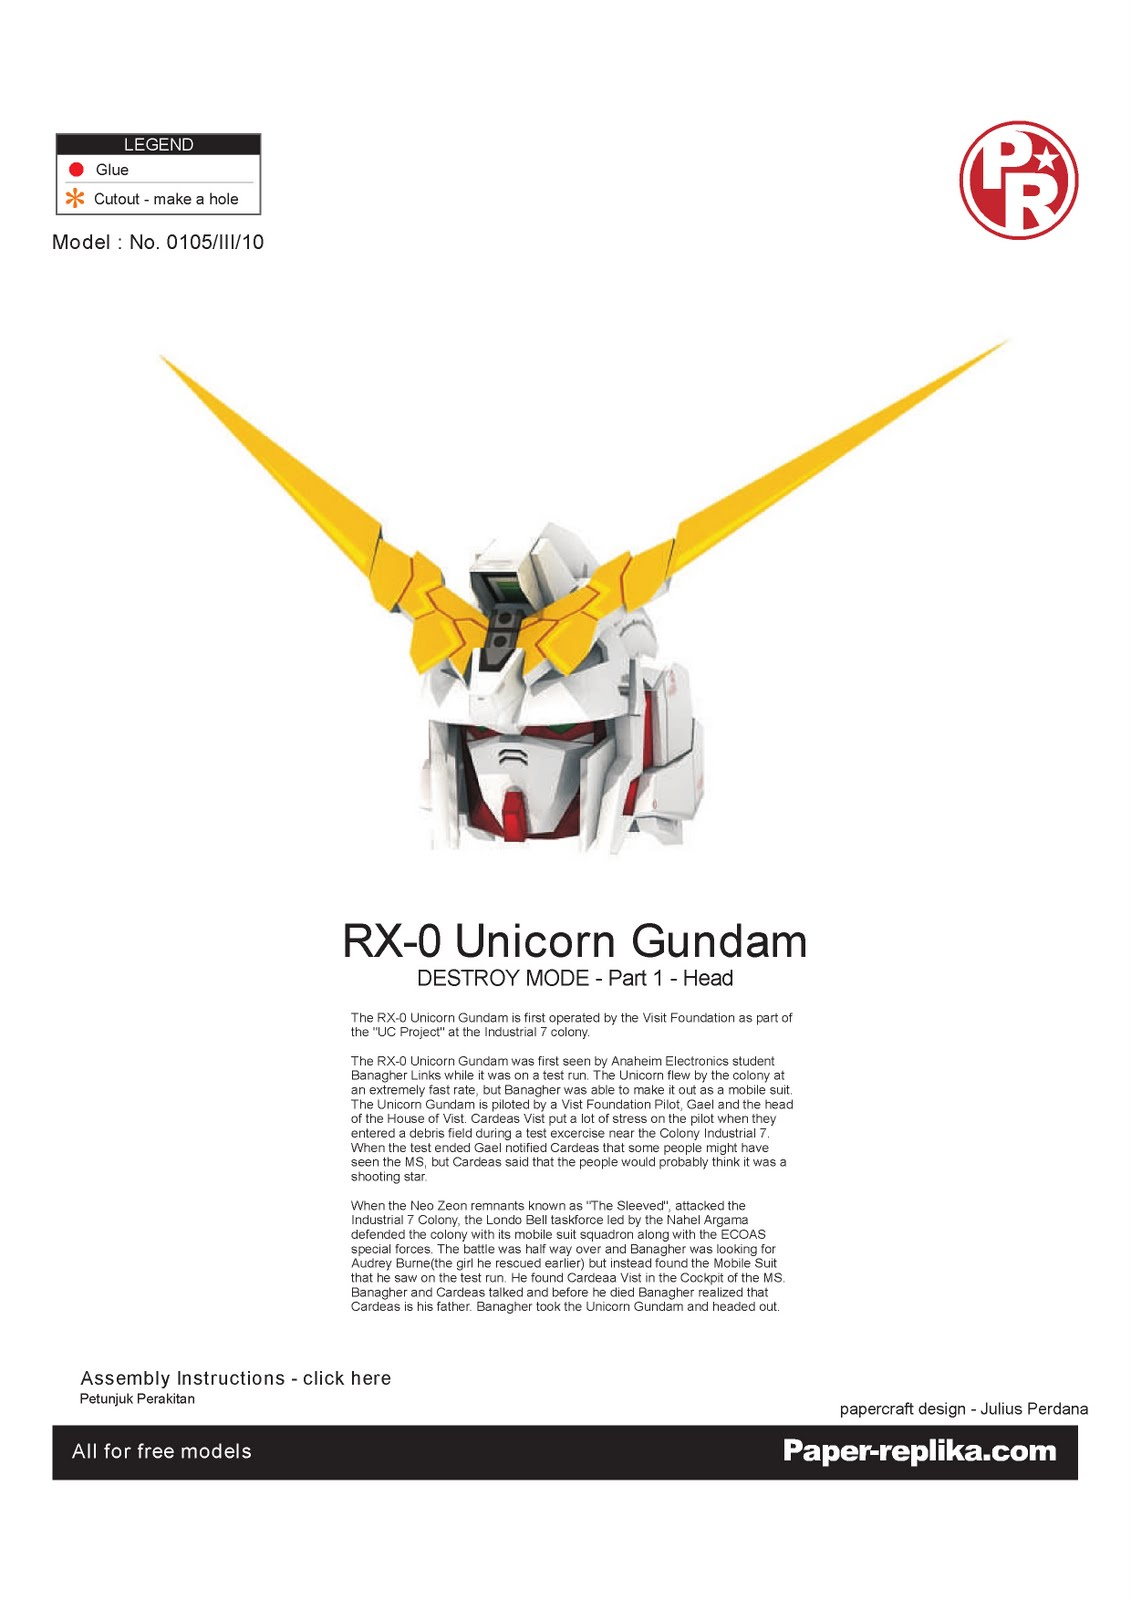 Find A Code >> Geek's Republic: Unicorn Gundam by paper-replika [Part 1 Head]